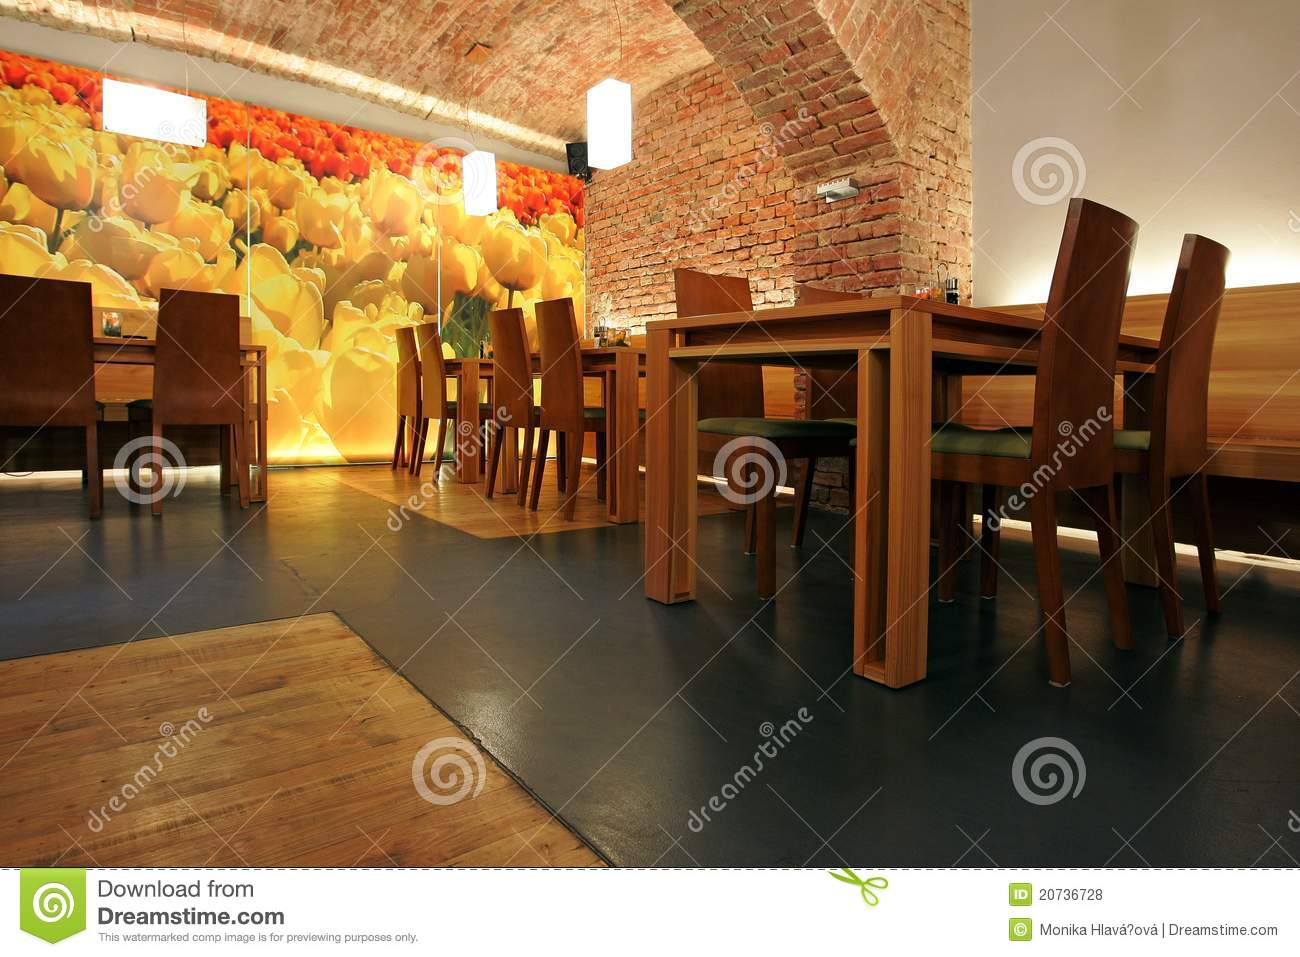 Restaurant Interior Pictures Free : Restaurant interior royalty free stock photos image